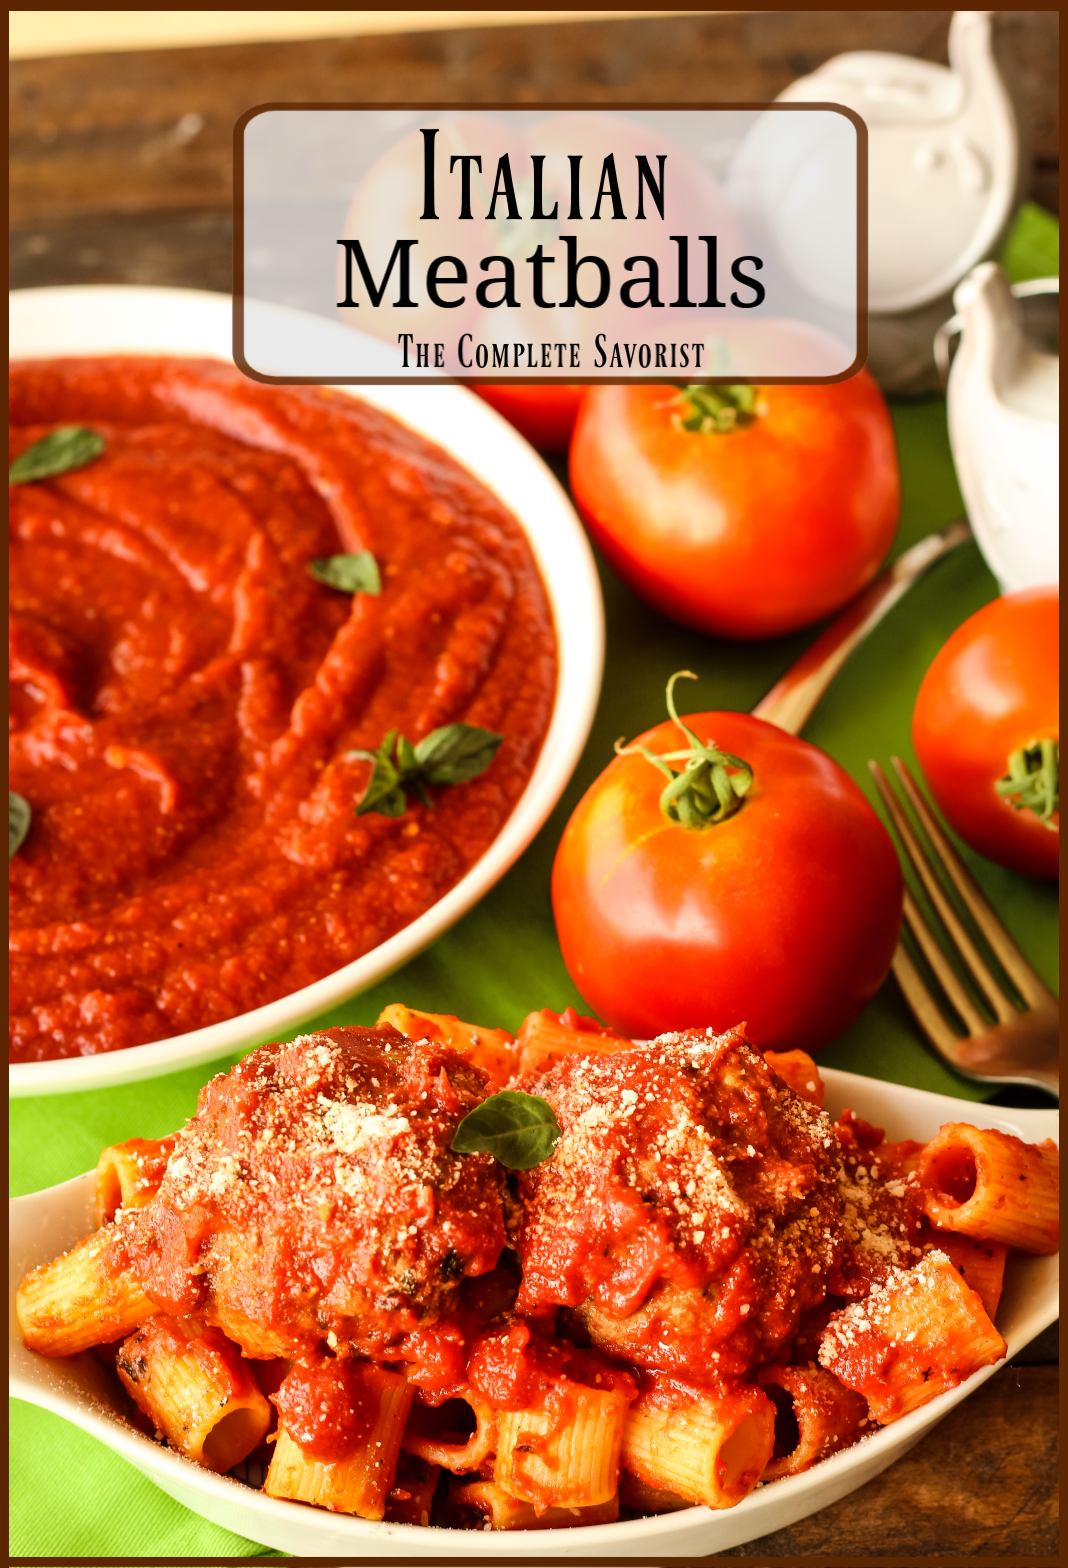 Saucy Italian meatballs, a blend of ground pork and beef.